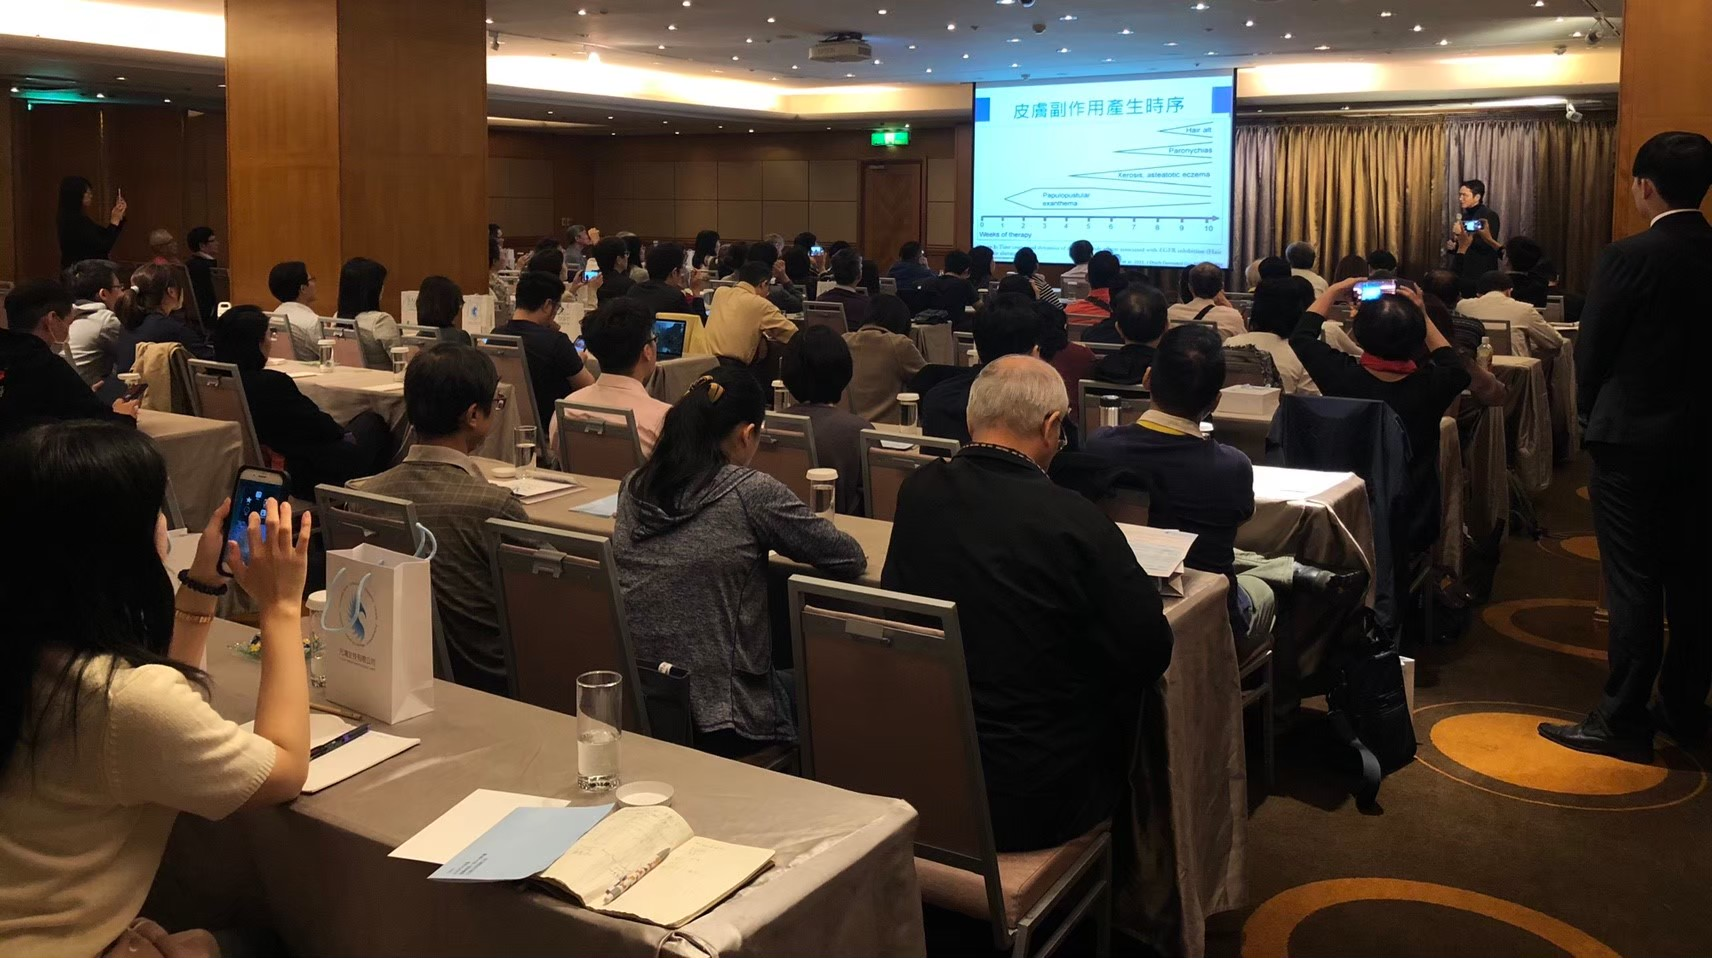 1st medical symposium held by Phoenix Medical Taiwan Pty., Ltd. on Oct. 28, 2018